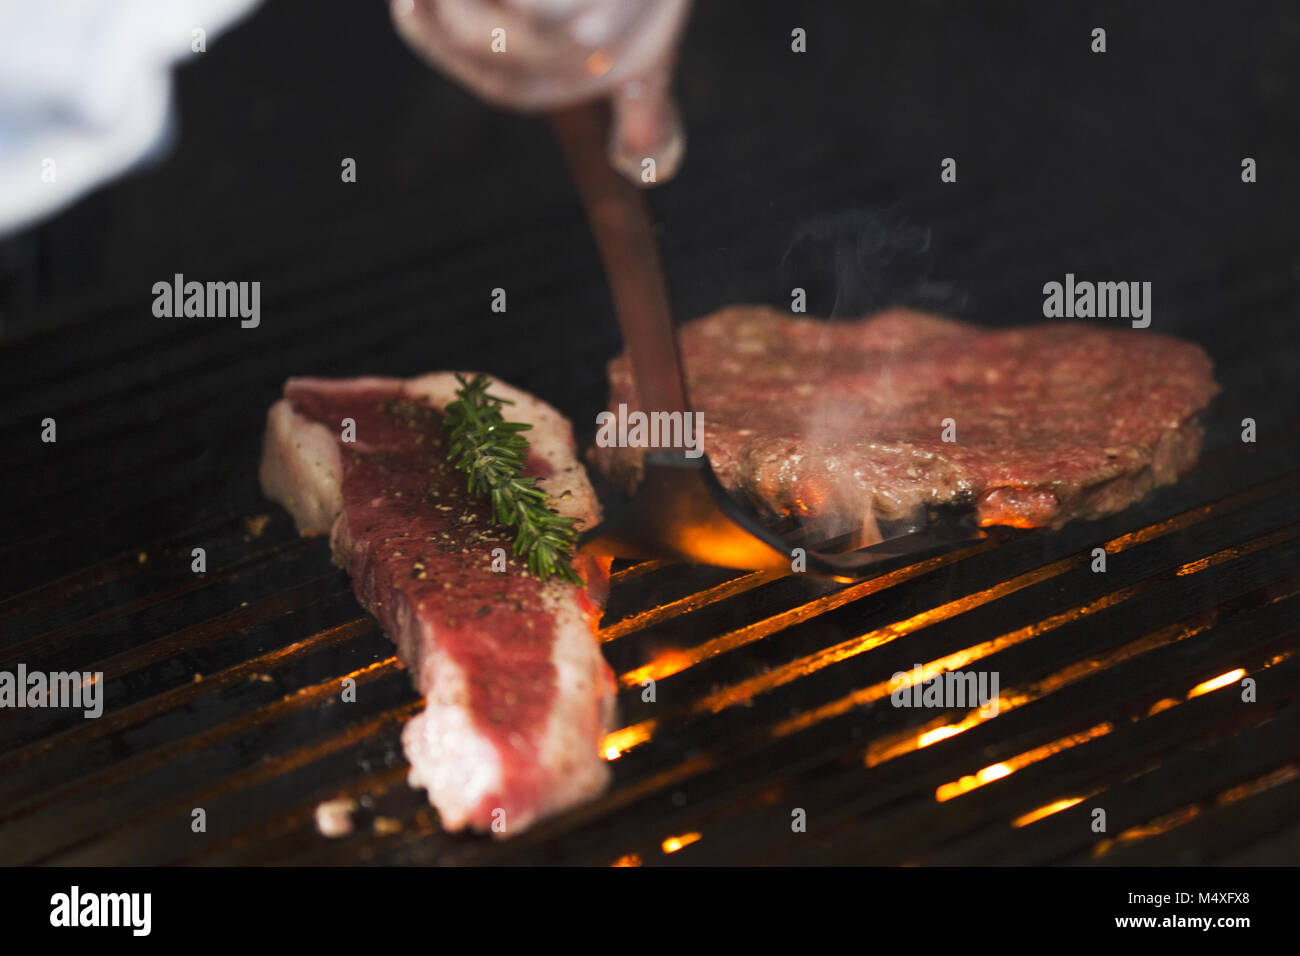 preparing meat on the grill, chef flips the piece with shovel stock